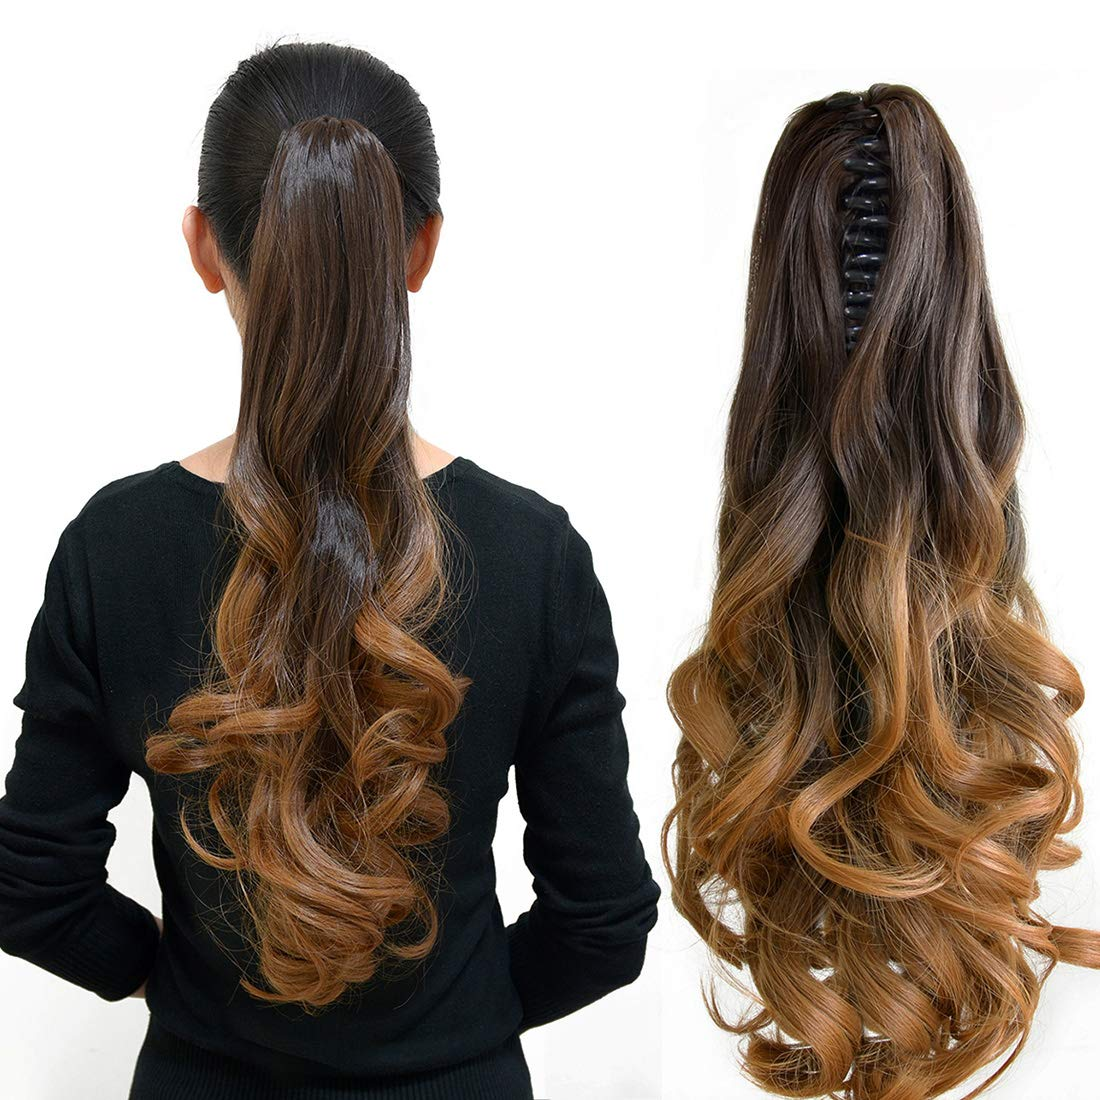 Amazon Com Neverland Beauty 20 50cm Natural Ombre Look Two Tone Long Big Wavy Claw Curly Ponytail Clip In Hair Extensions 6 27 Beauty